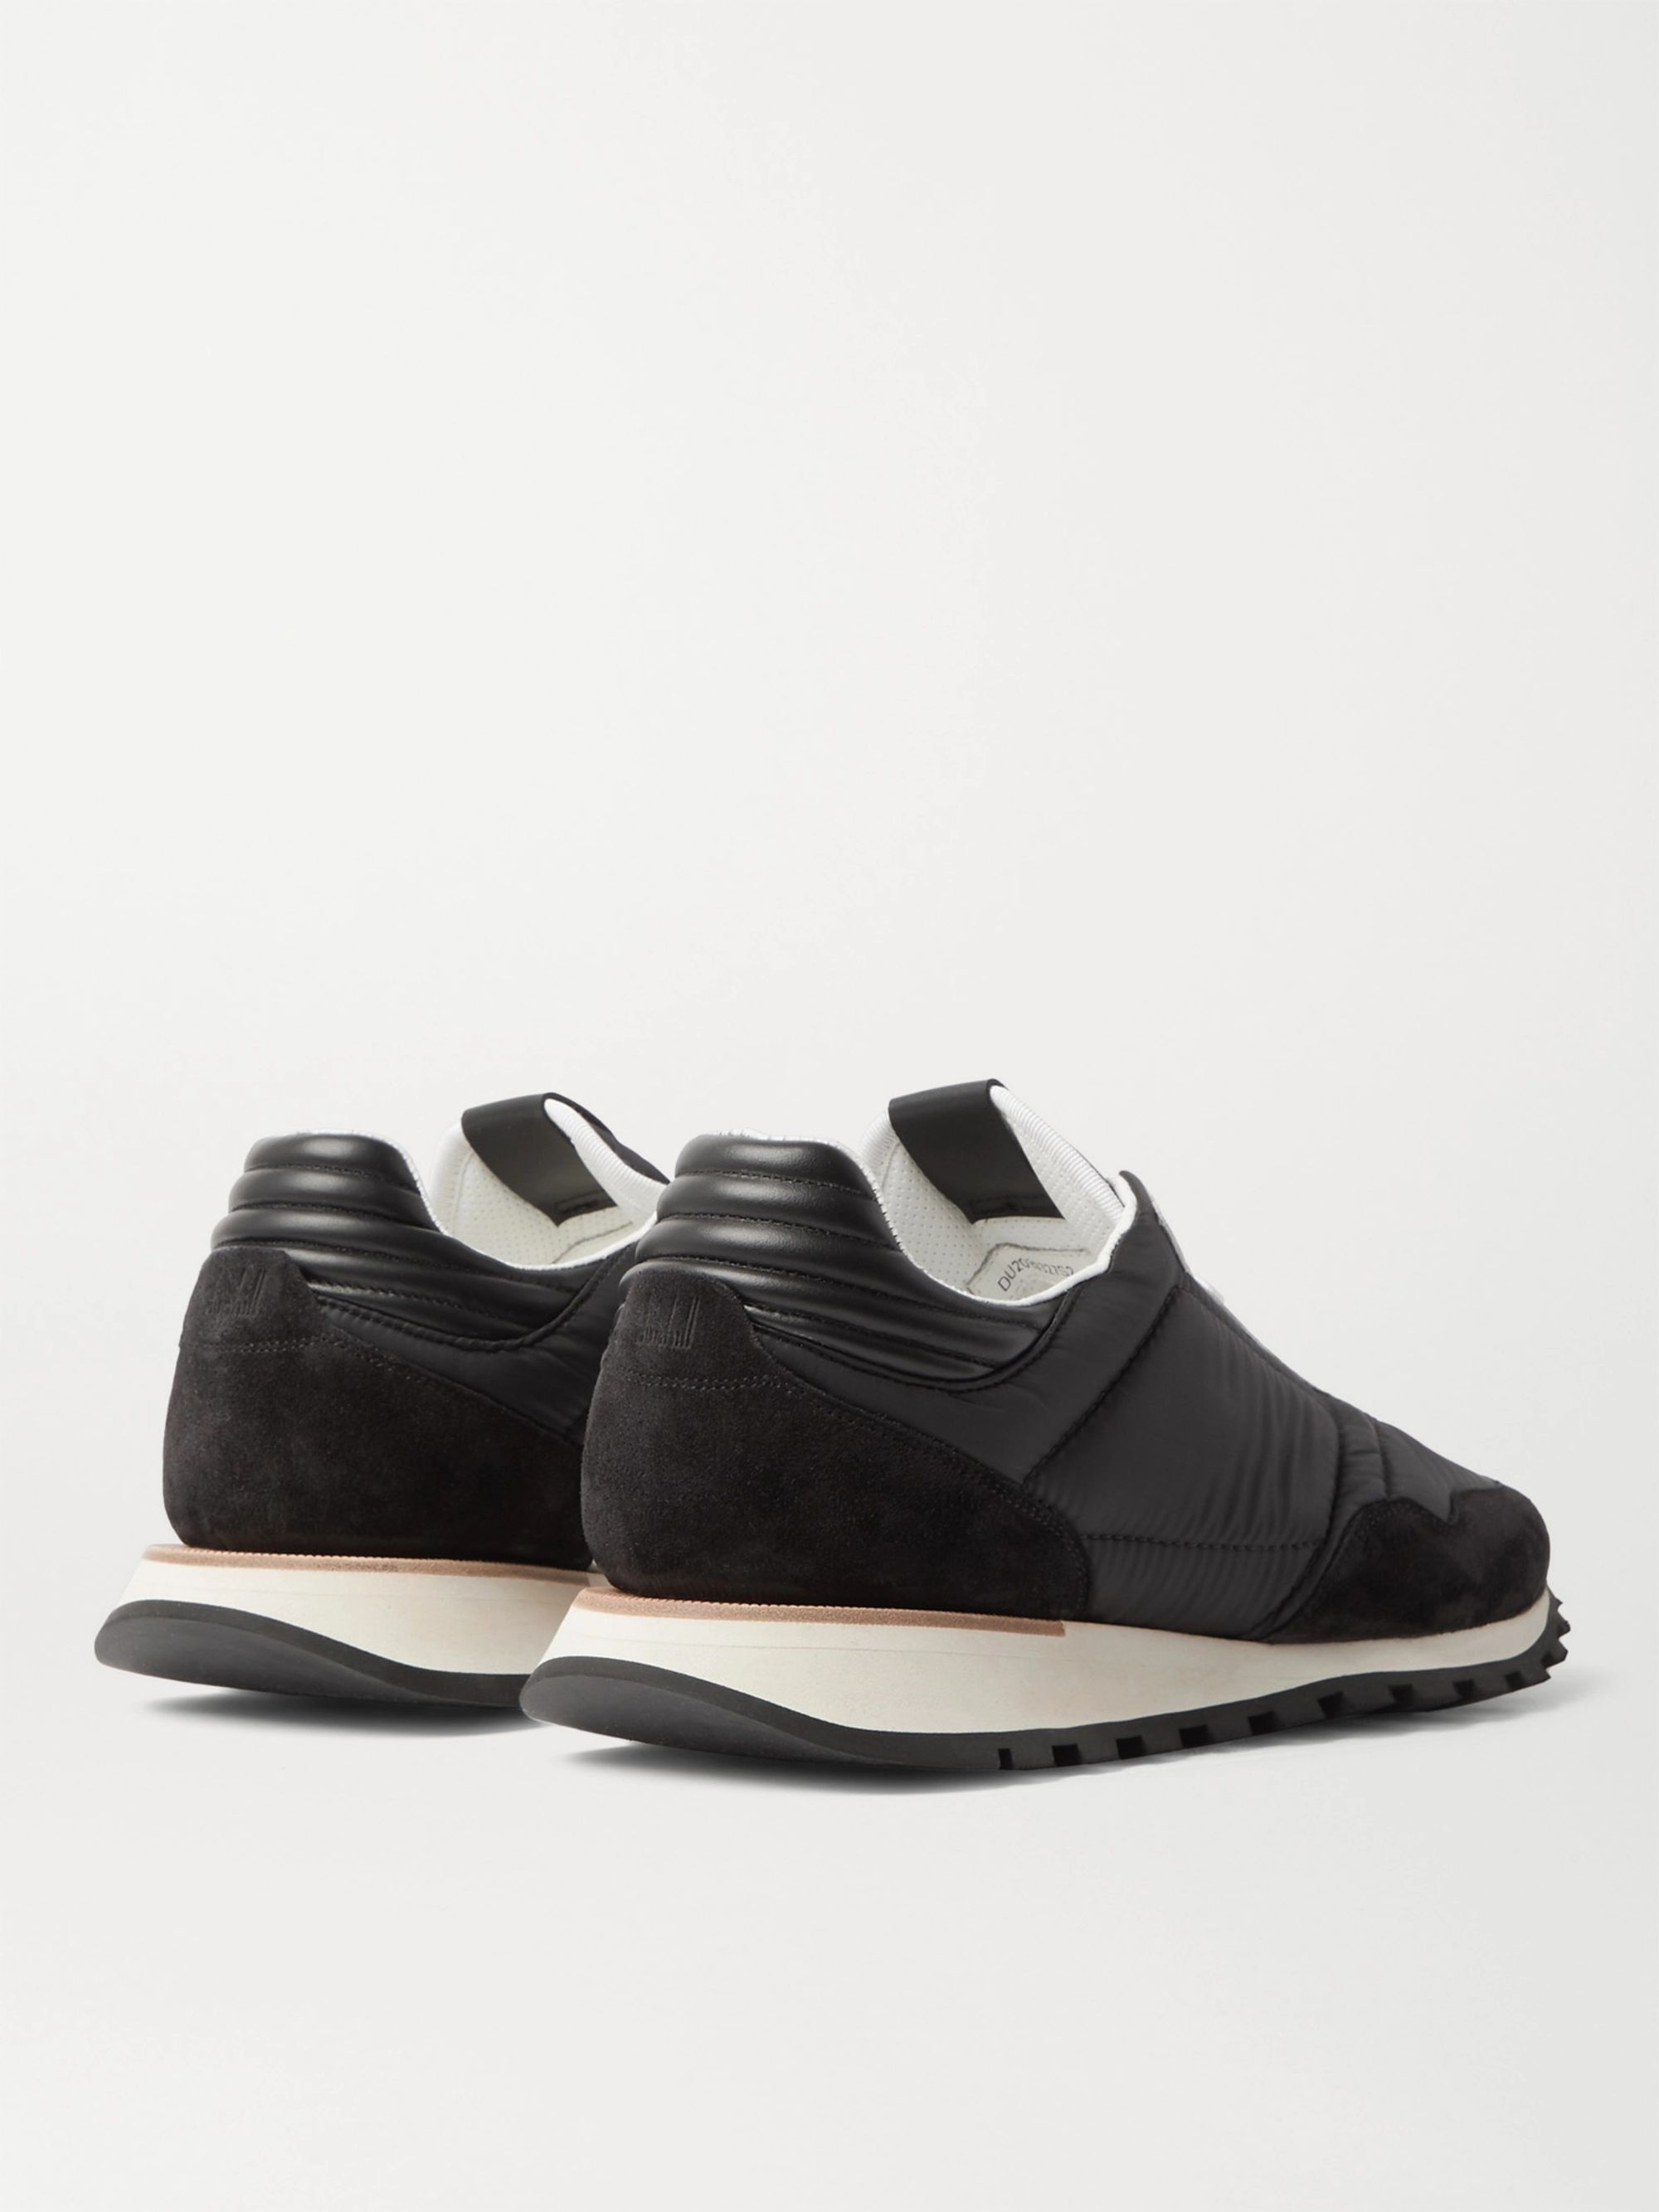 Black Axis Leather And Suede-trimmed Shell Sneakers | Dunhill